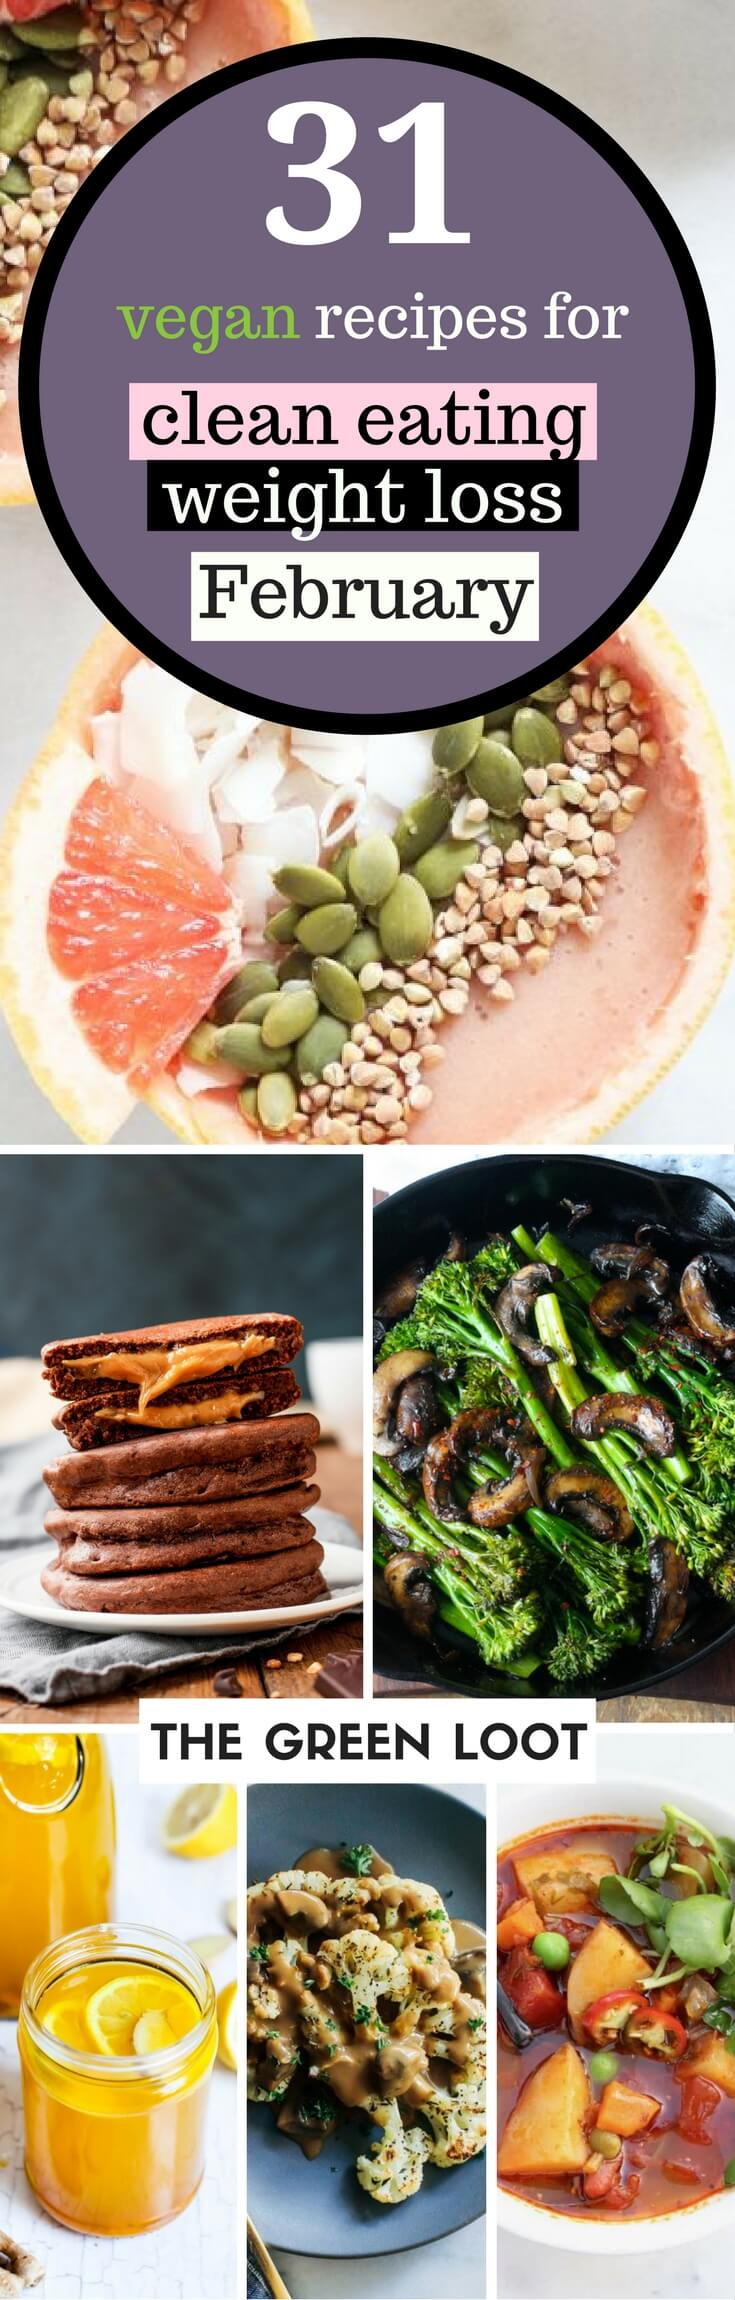 Vegetarian Breakfast Recipes For Weight Loss  31 Vegan Clean Eating Weight Loss Recipes for February